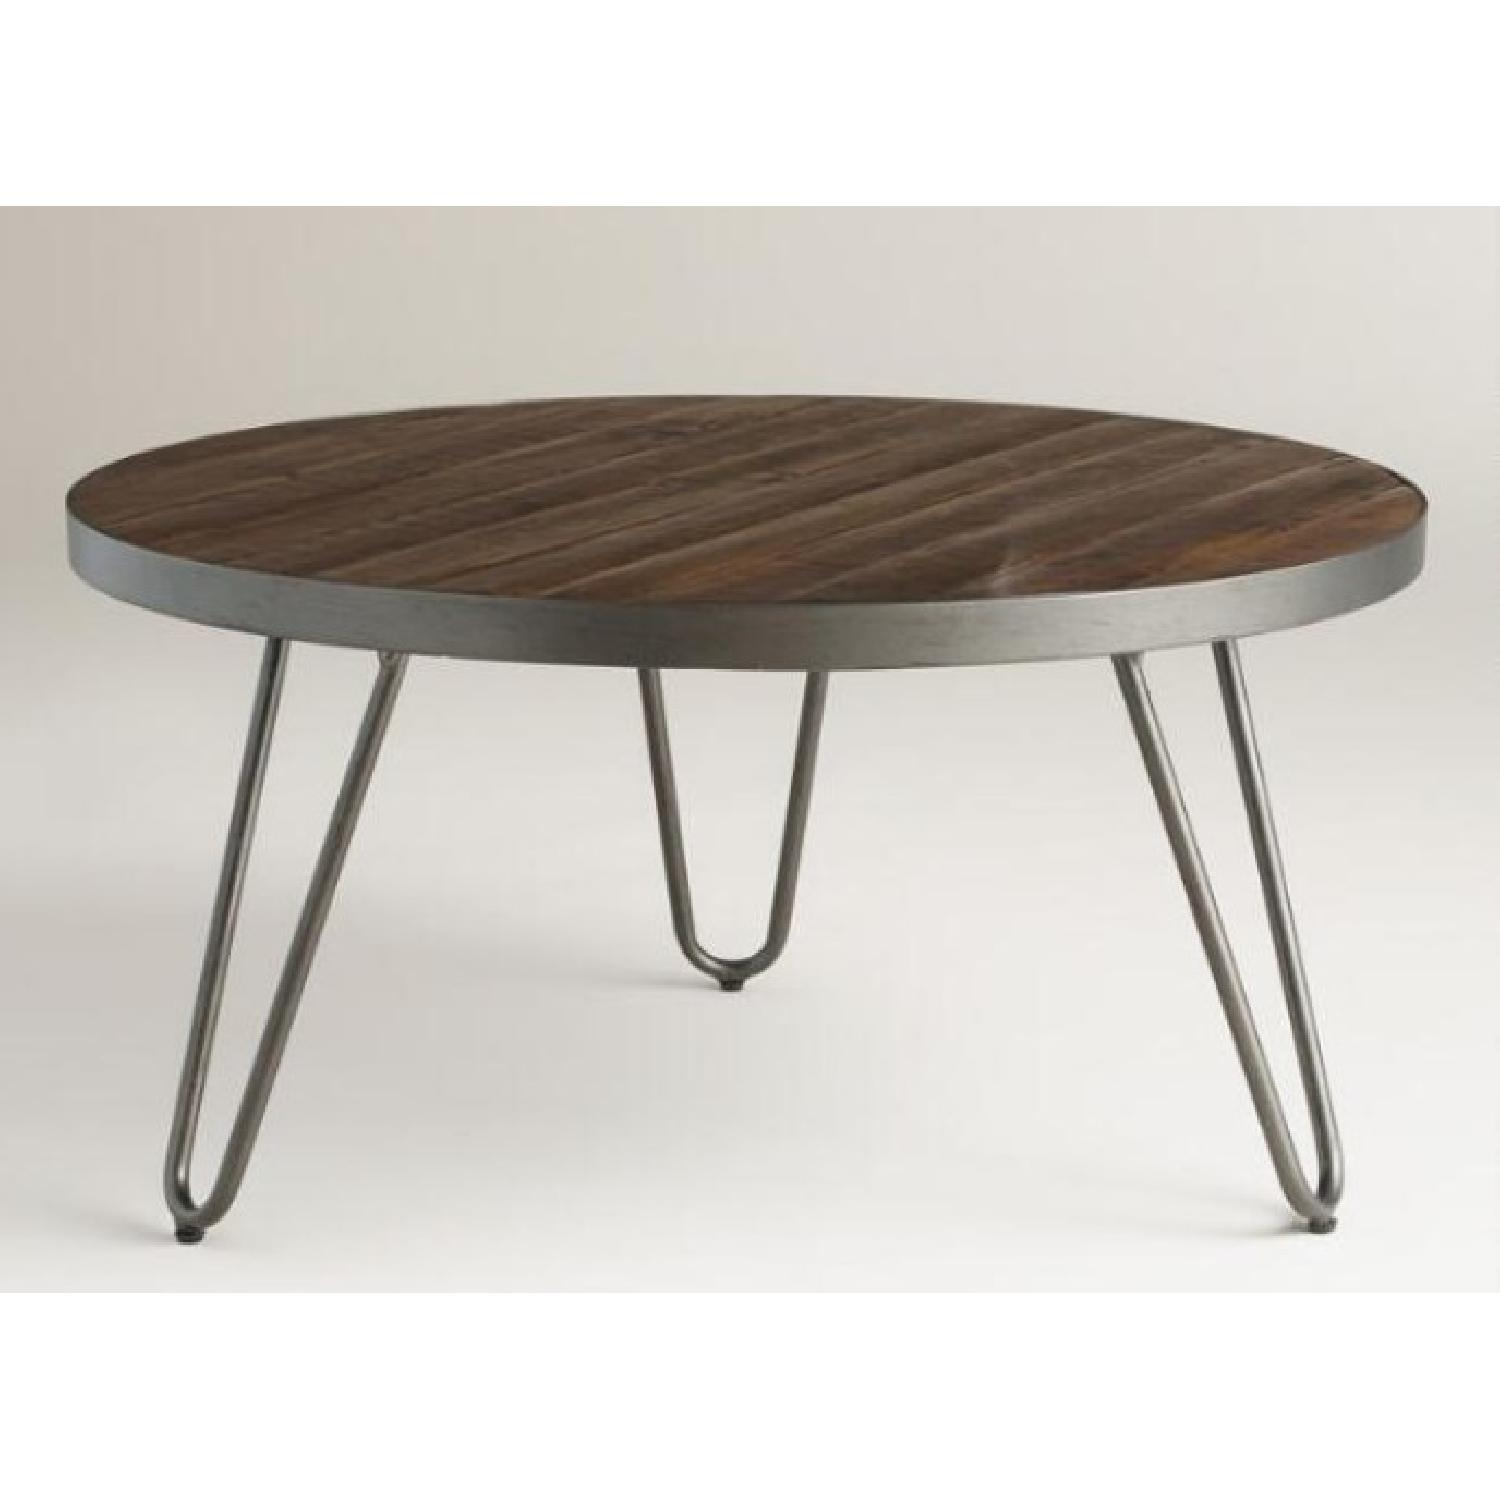 World Market Round Wood Hairpin Coffee Table - image-2